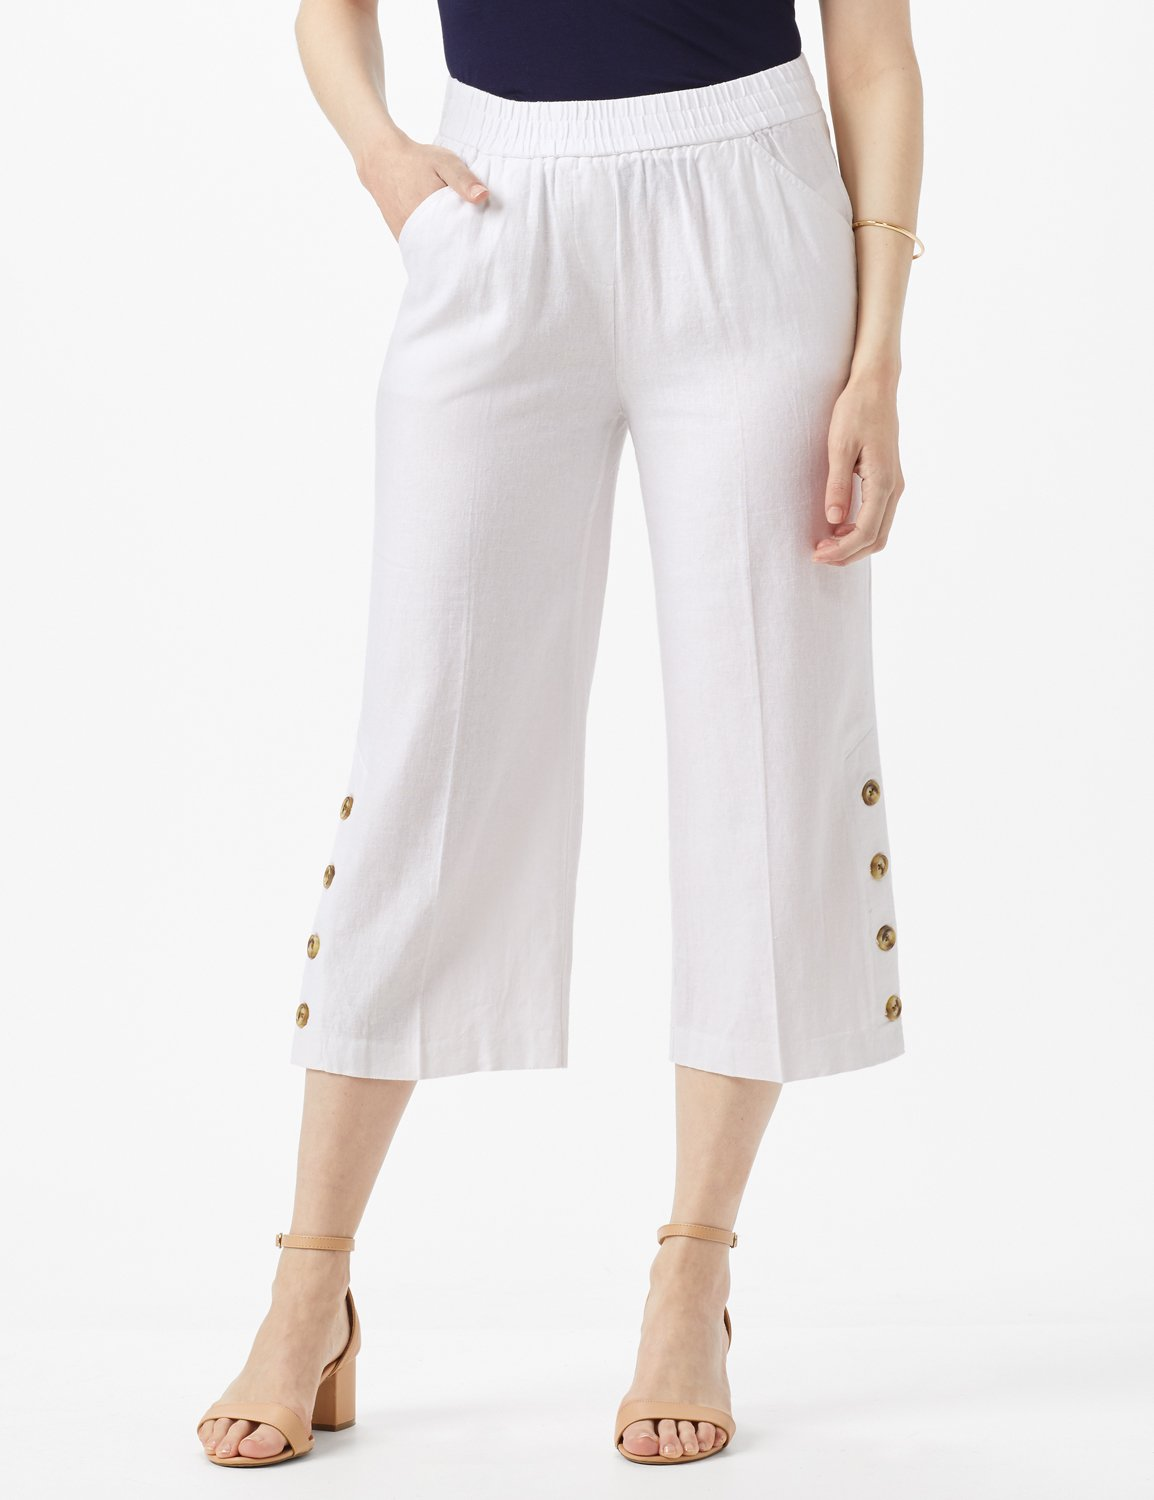 Elastic Waist Crop With Button Detail On Leg -White - Front